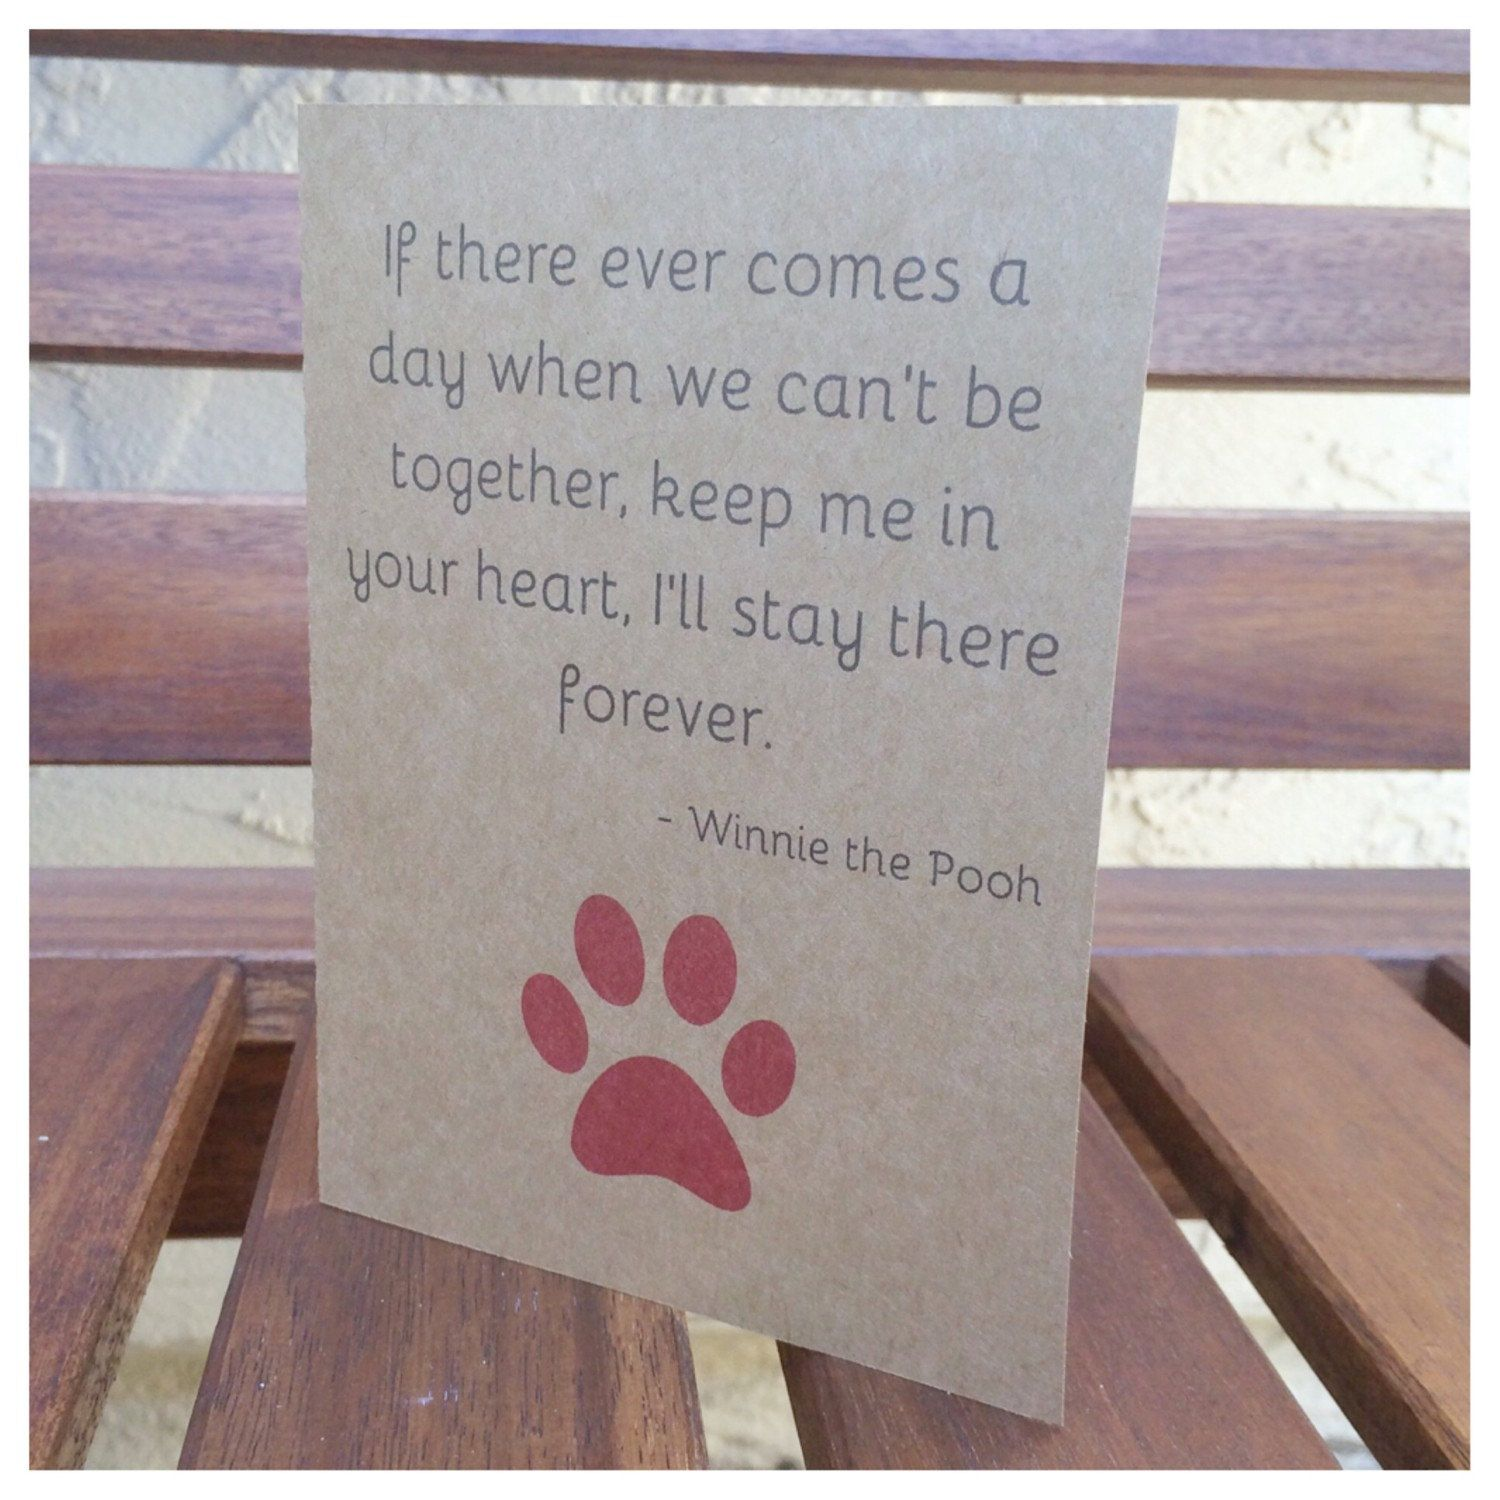 Loss Of A Pet Quote Loss Of A Pet Quote  Google Search  Little Man  Pinterest  Pet